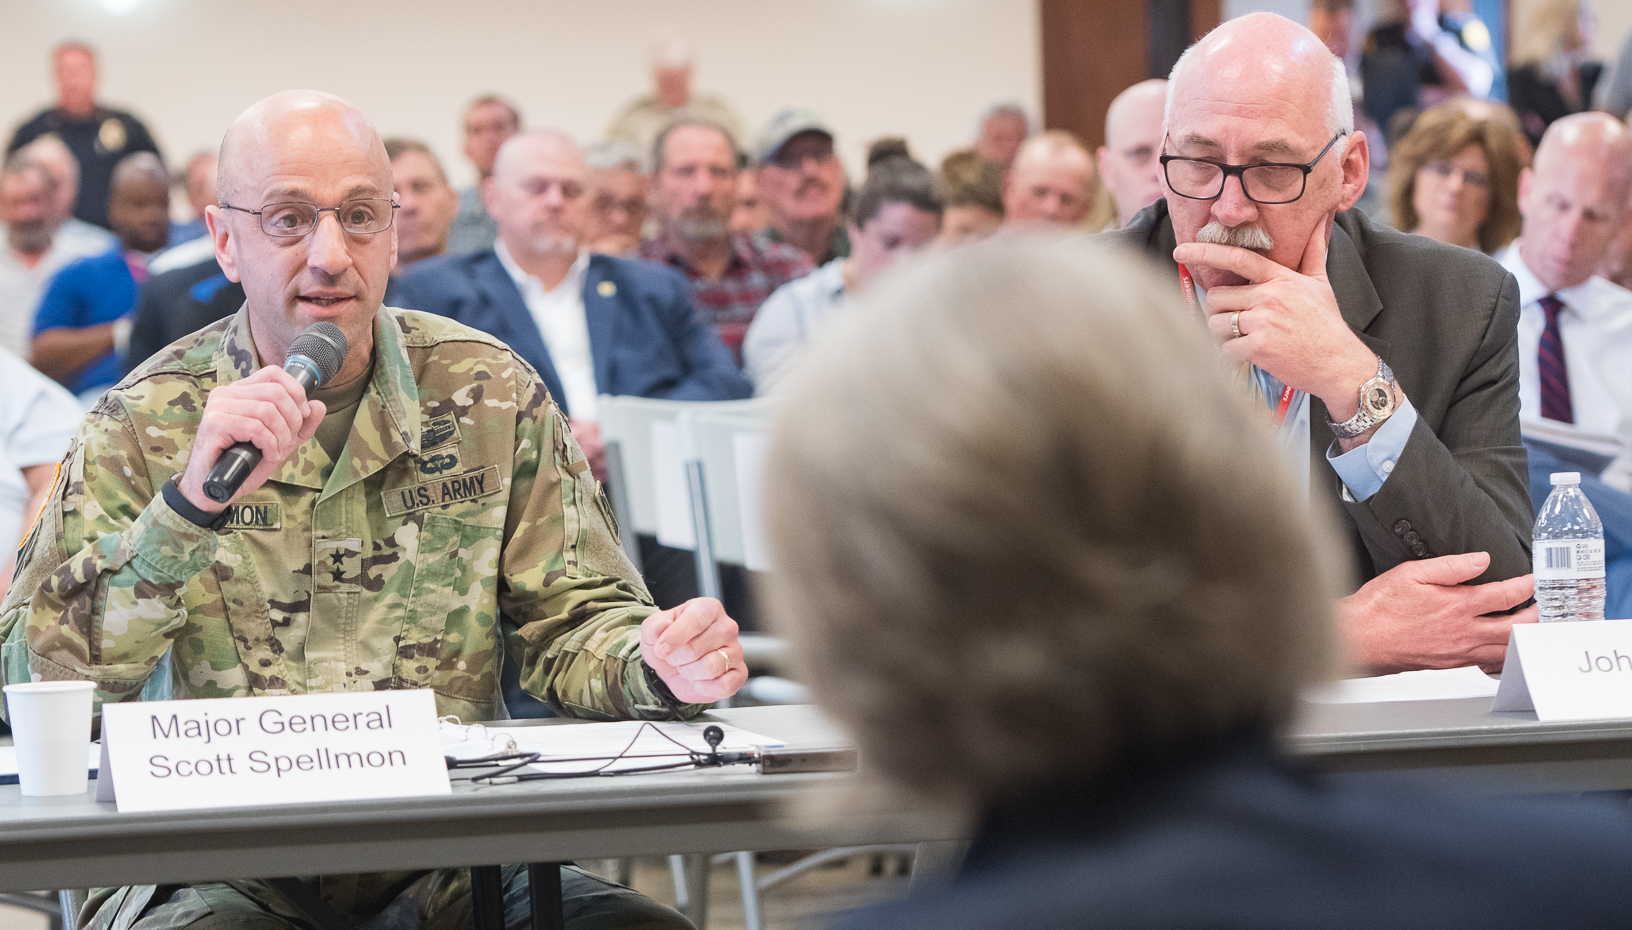 Major General Scott Spellmon (left) responds to a question during a field hearing in Glenwood on Wednesday.